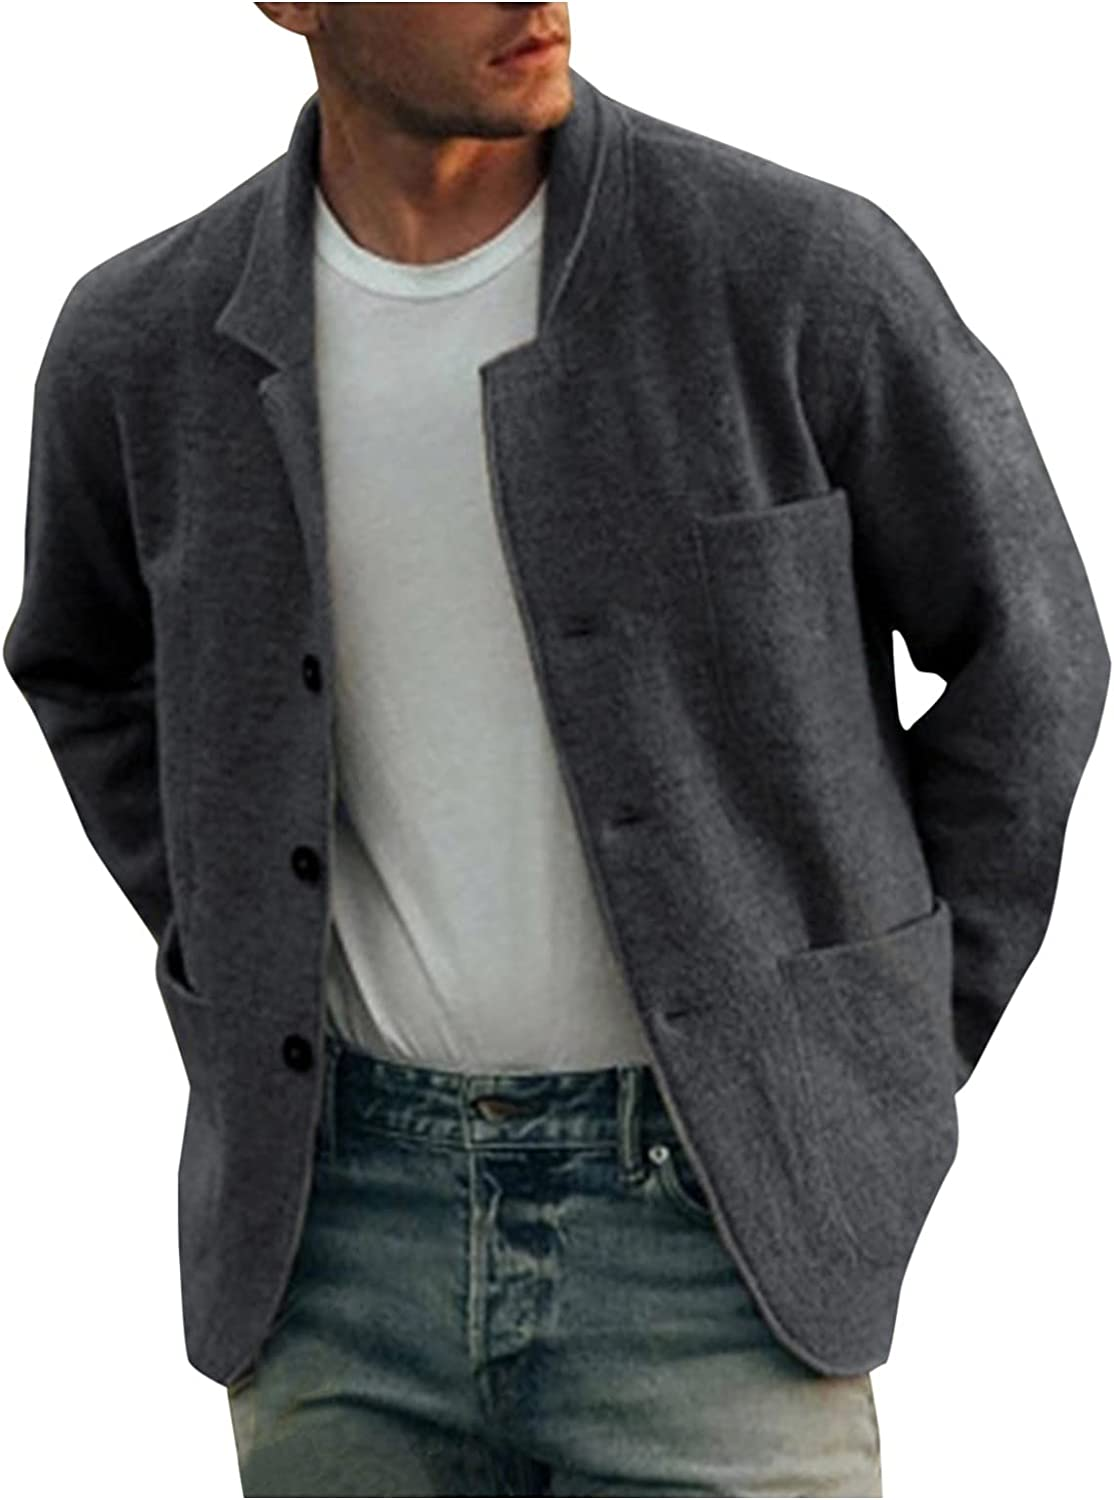 Mens Jackets Casual Big And Tall, Mens Casual Lightweight Jacket Autumn Winter Coats Multi-pocketed Outdoor Jackets